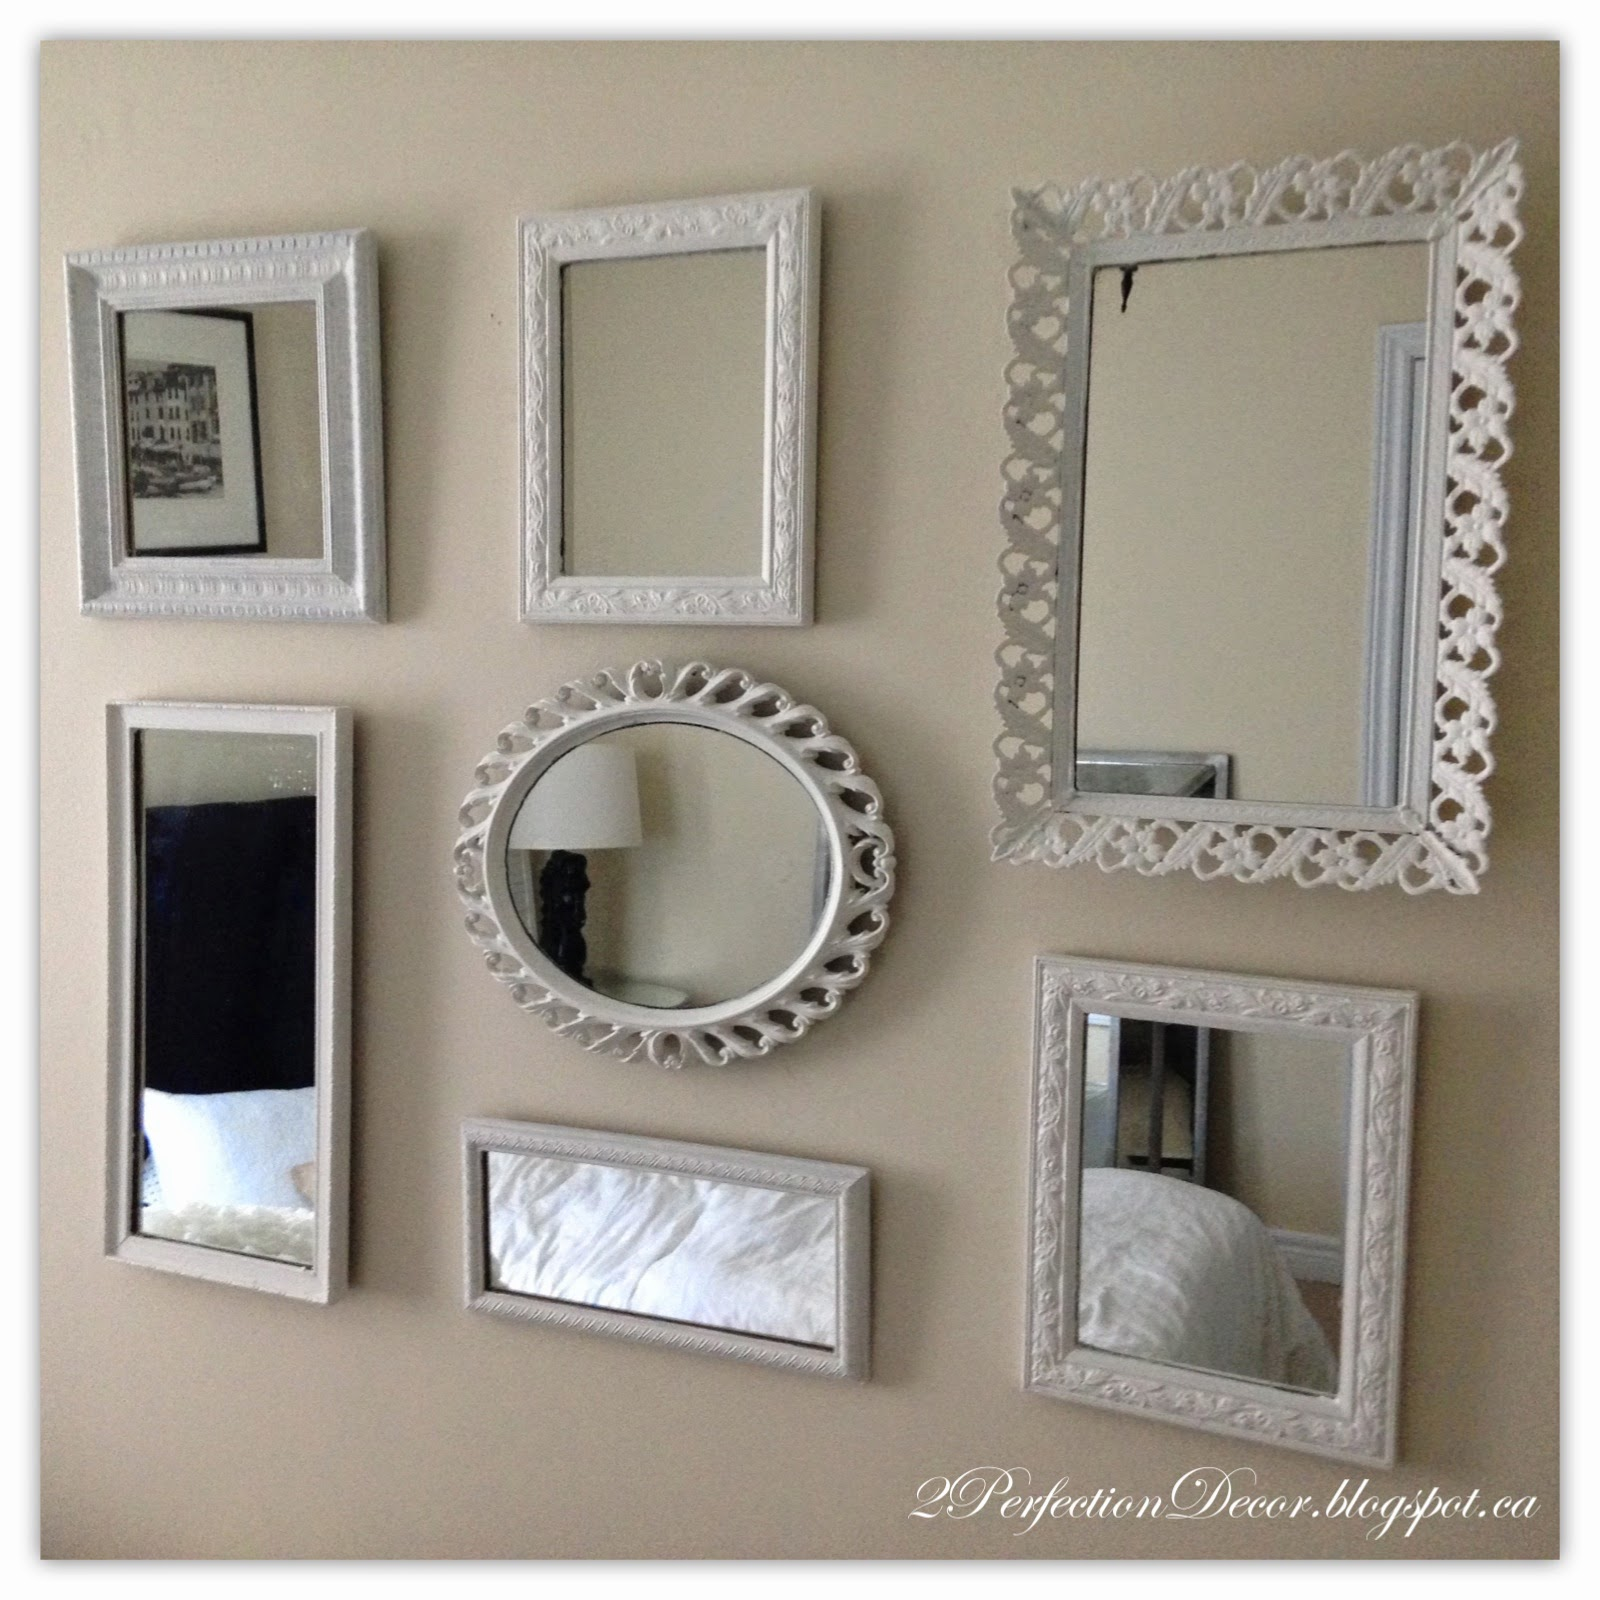 2Perfection Decor: Painted Mirror Collage